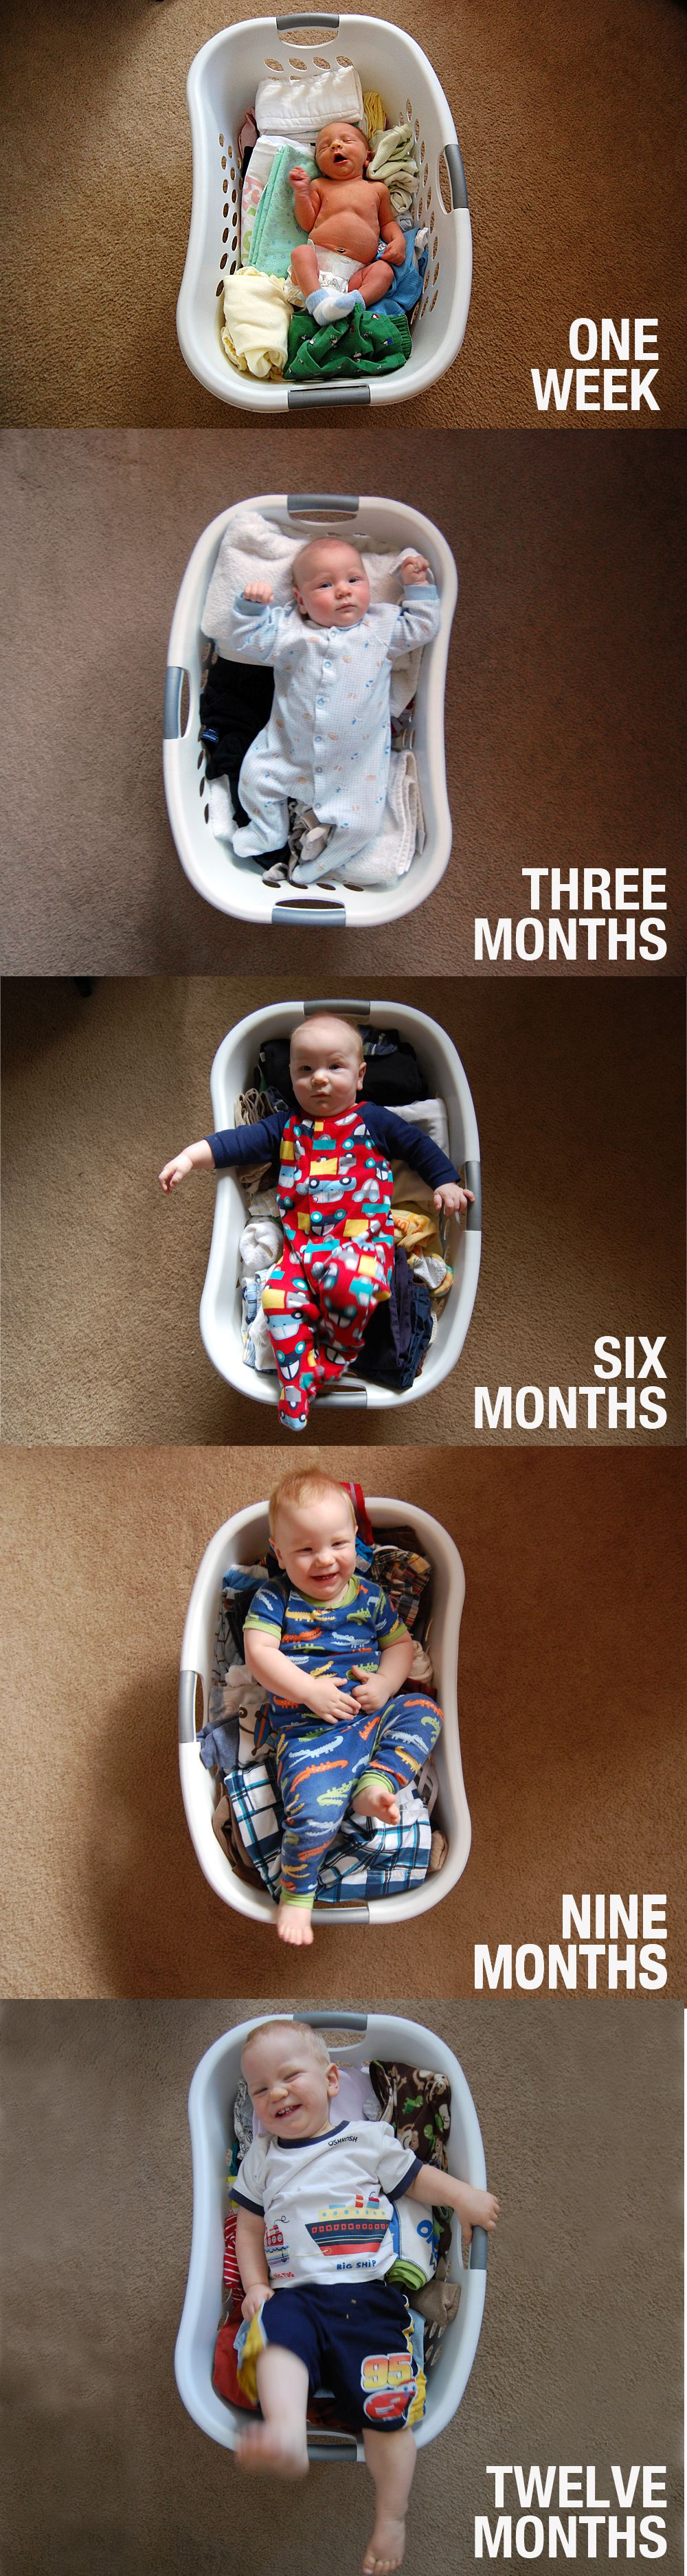 Baby's first year photo series